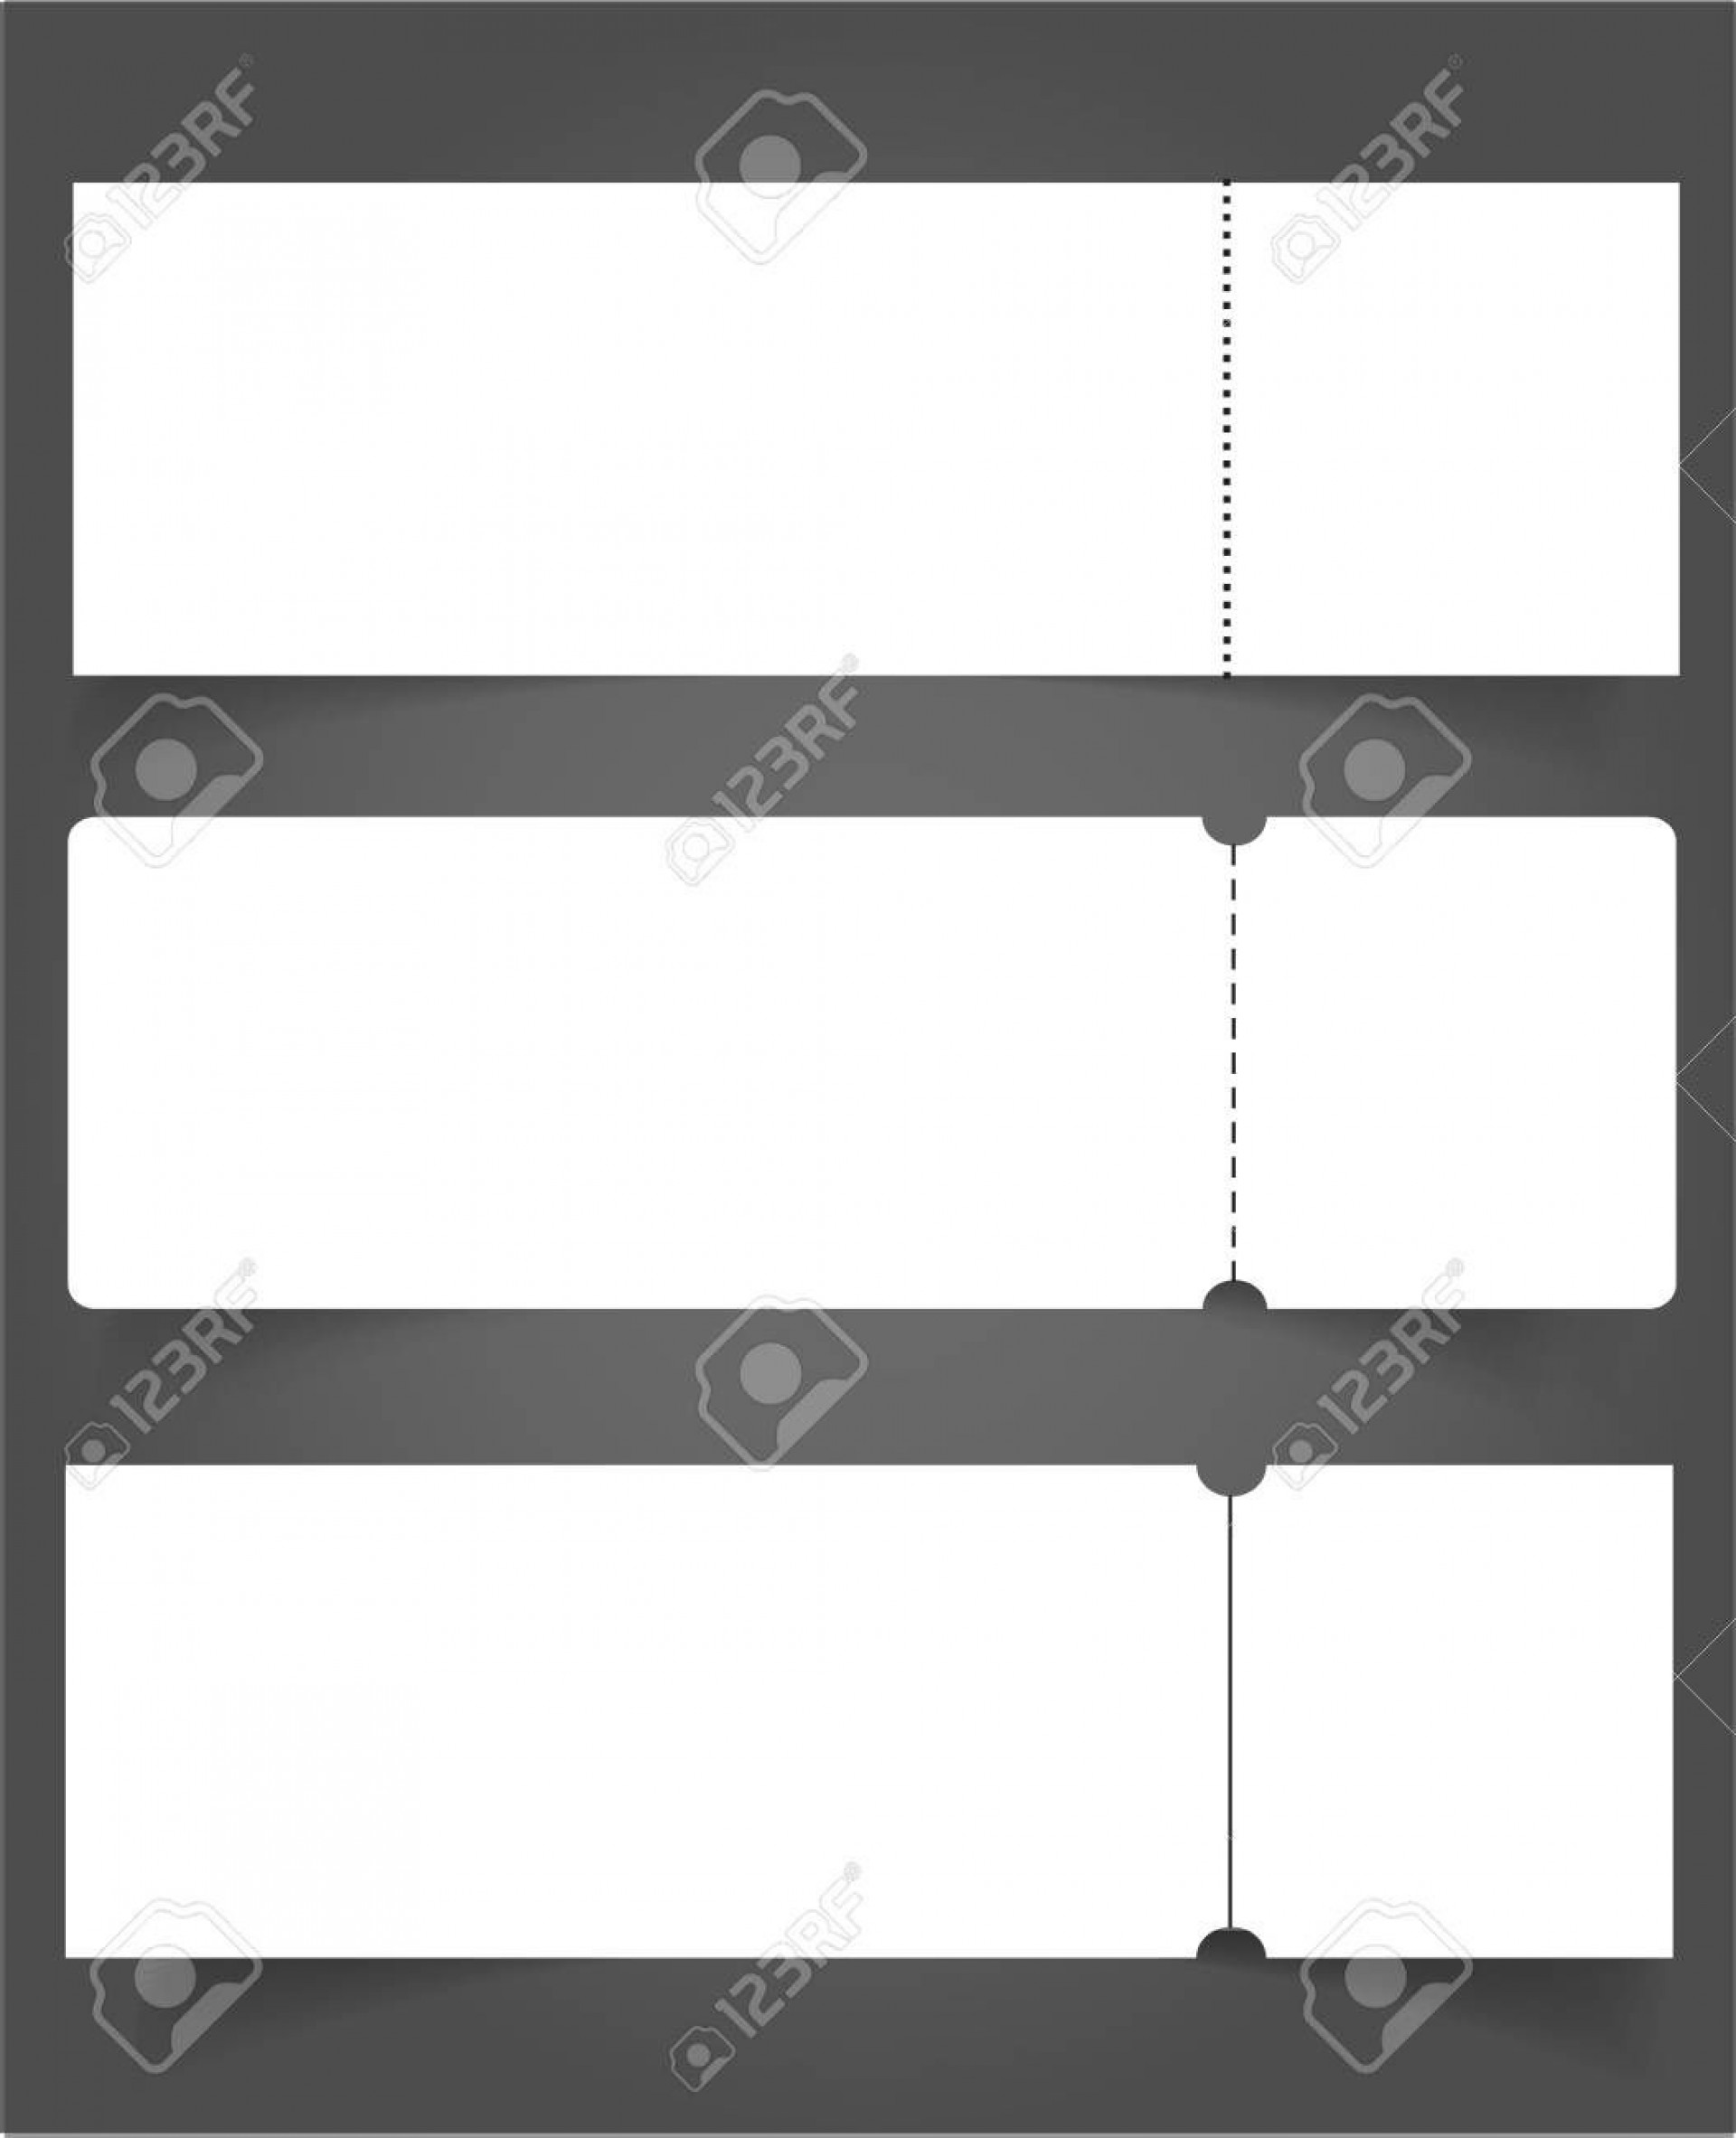 001 Outstanding Free Event Ticket Template Printable Photo 1920